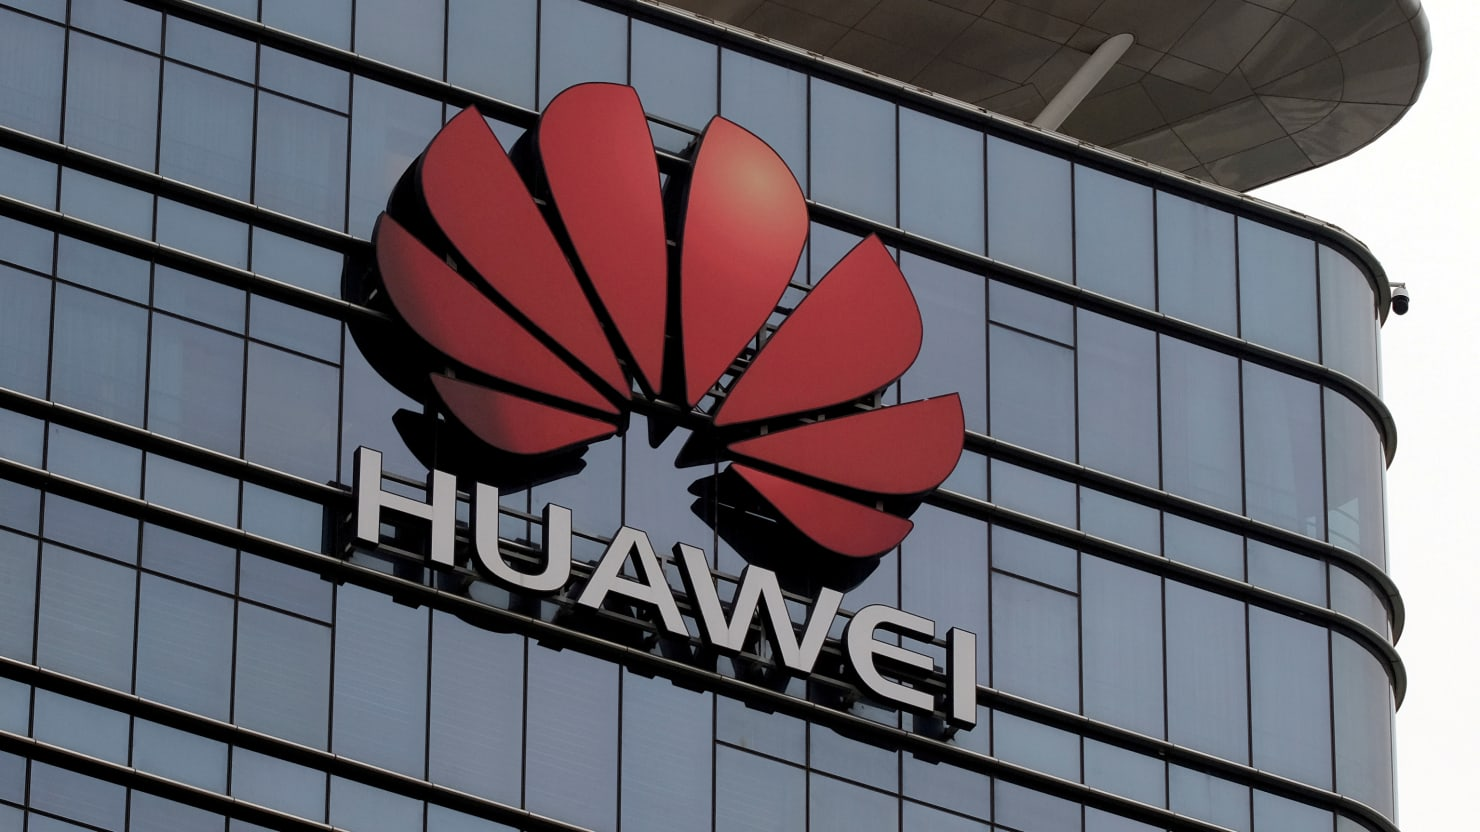 Google Suspends Some Business With Huawei After Trump Blacklist: Reuters